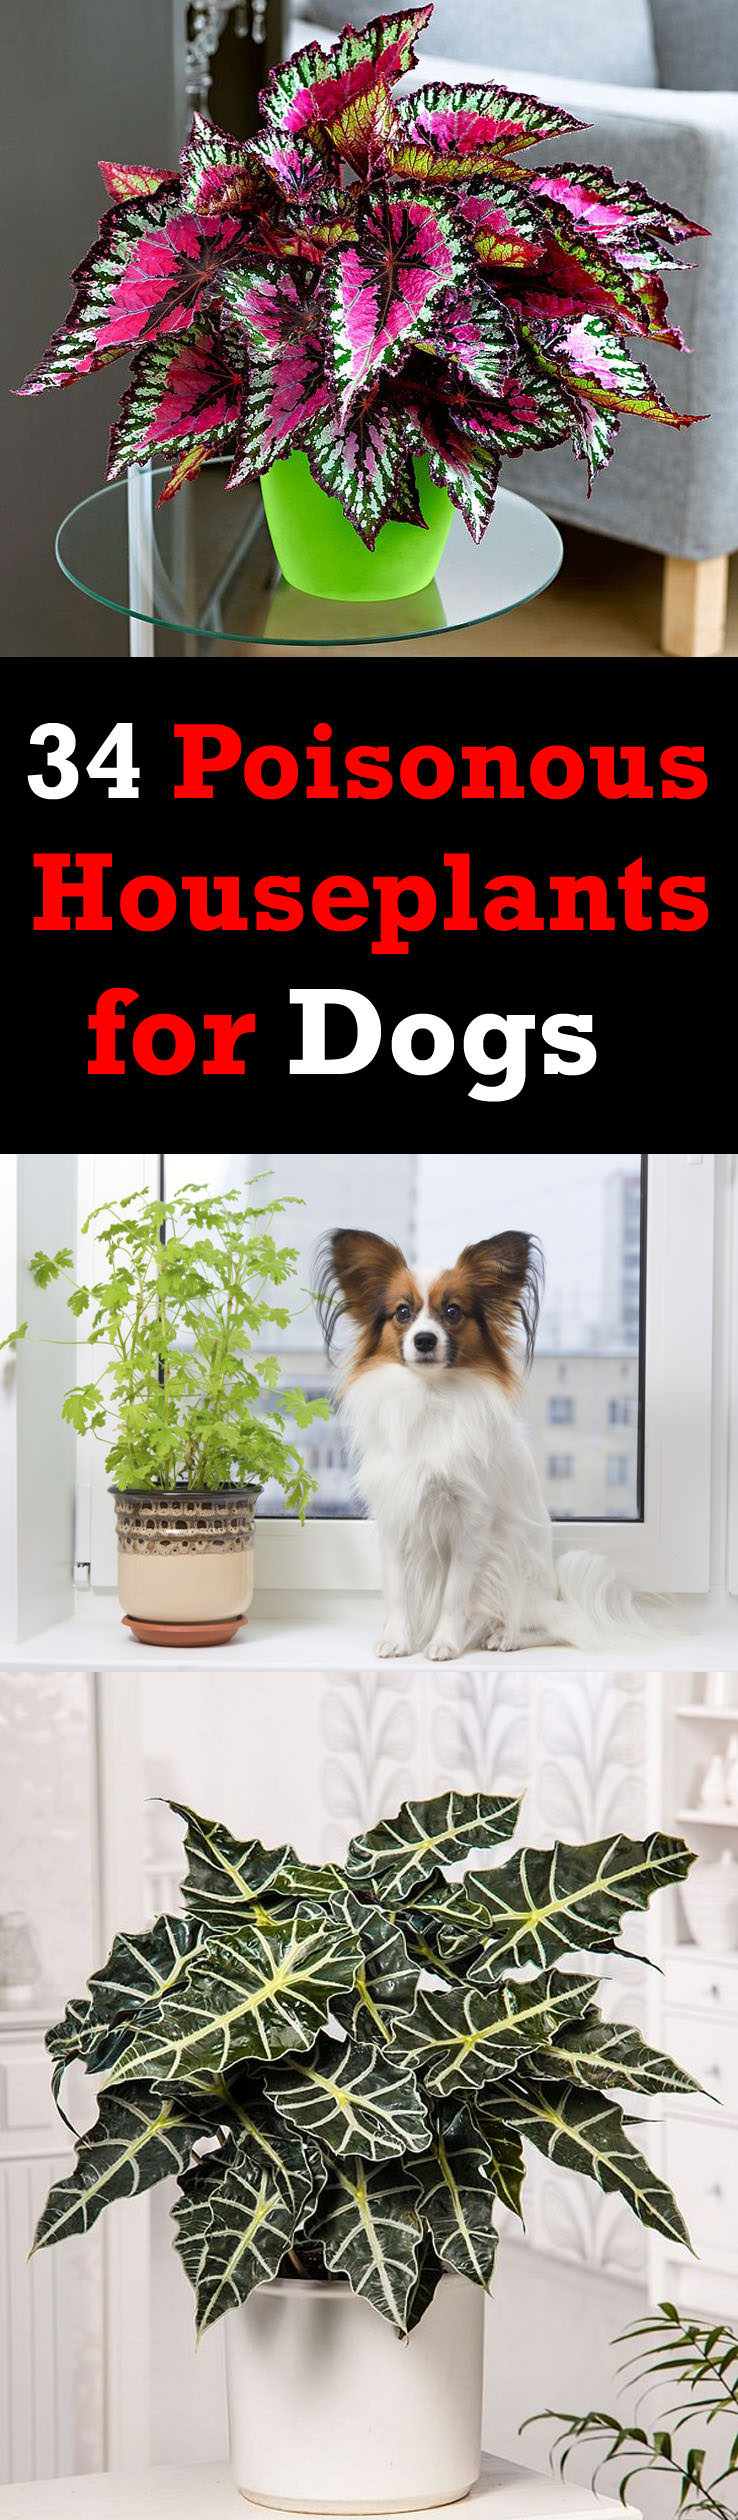 34 poisonous houseplants for dogs plants toxic to dogs balcony there are poisonous houseplants for dogs and cats some are mildly poisonous and some are izmirmasajfo